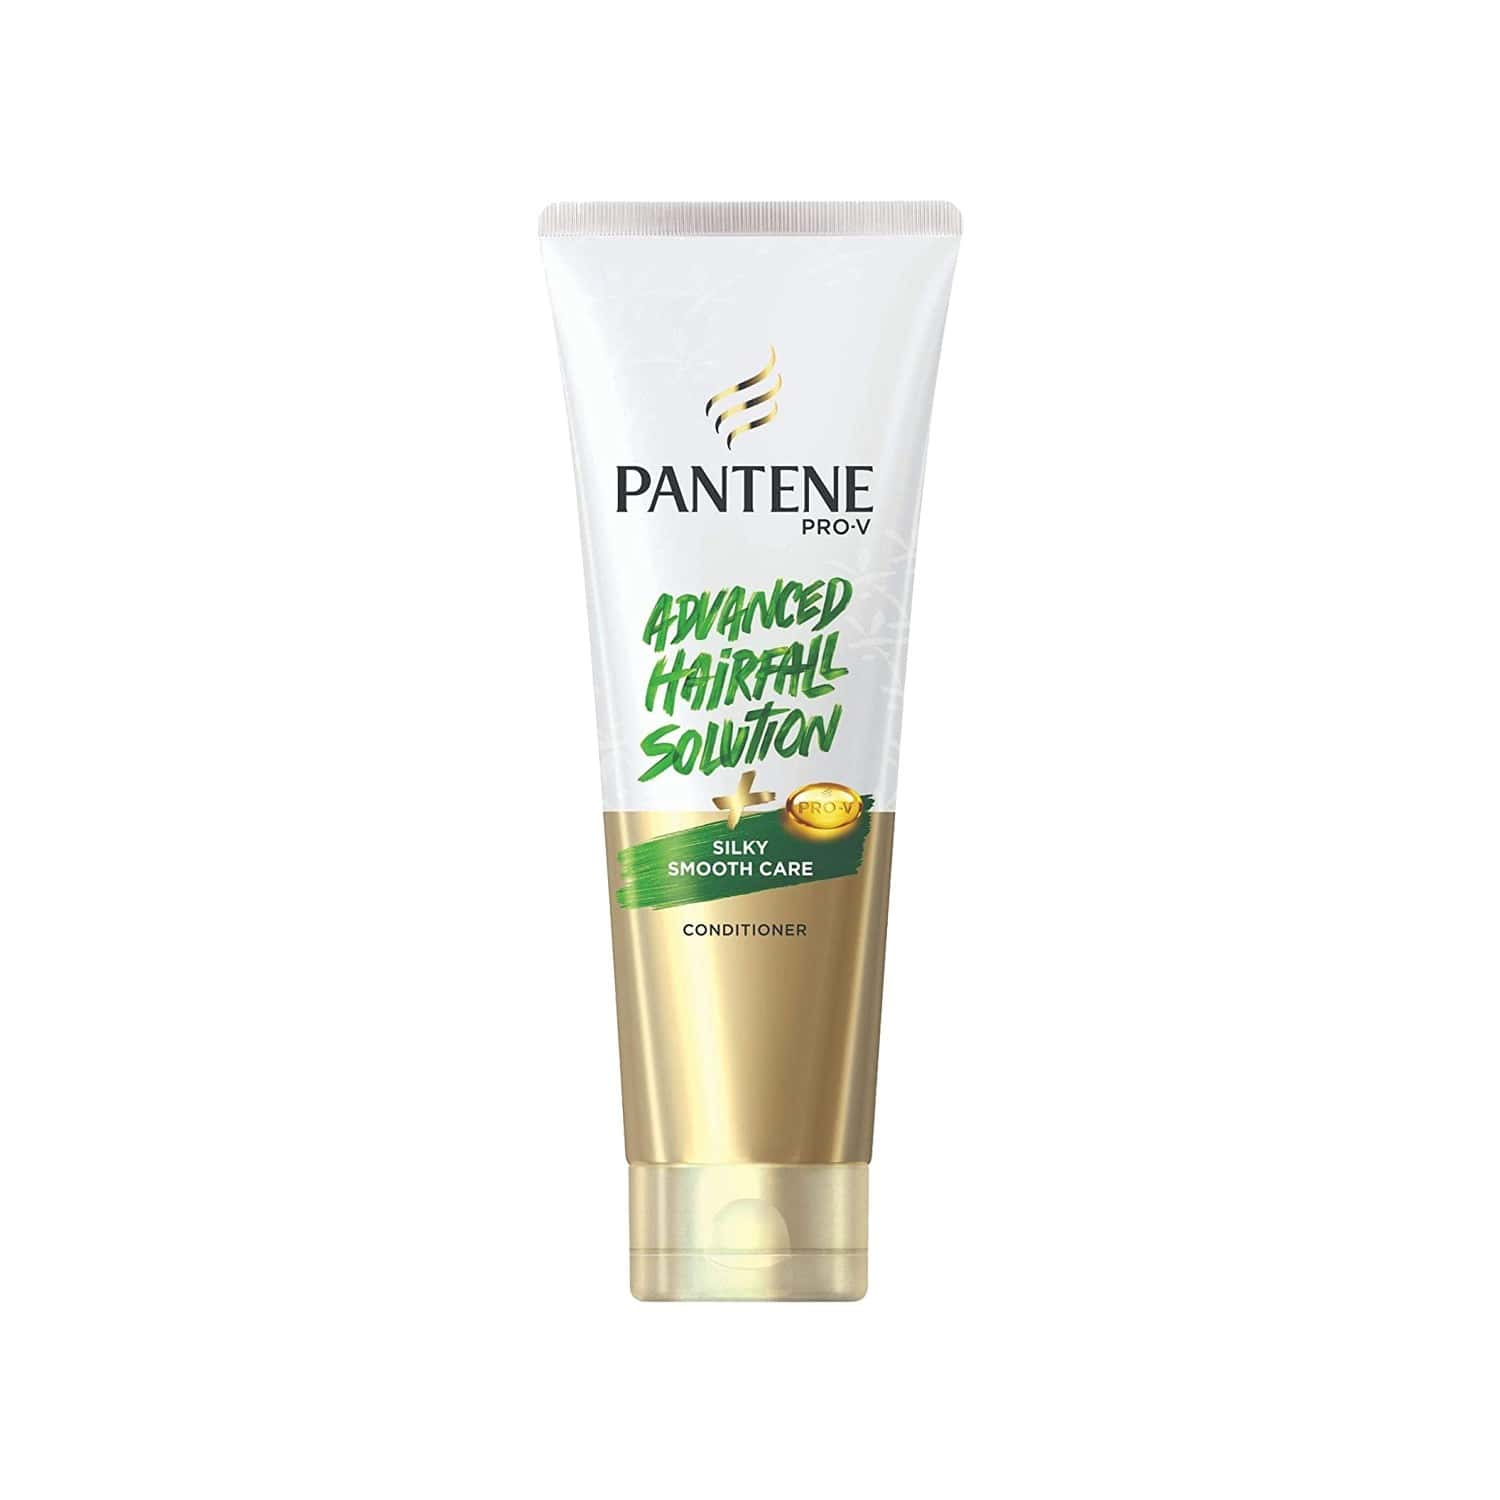 Pantene Advanced Hair Fall Solution Silky Smooth Care Conditioner - 80ml